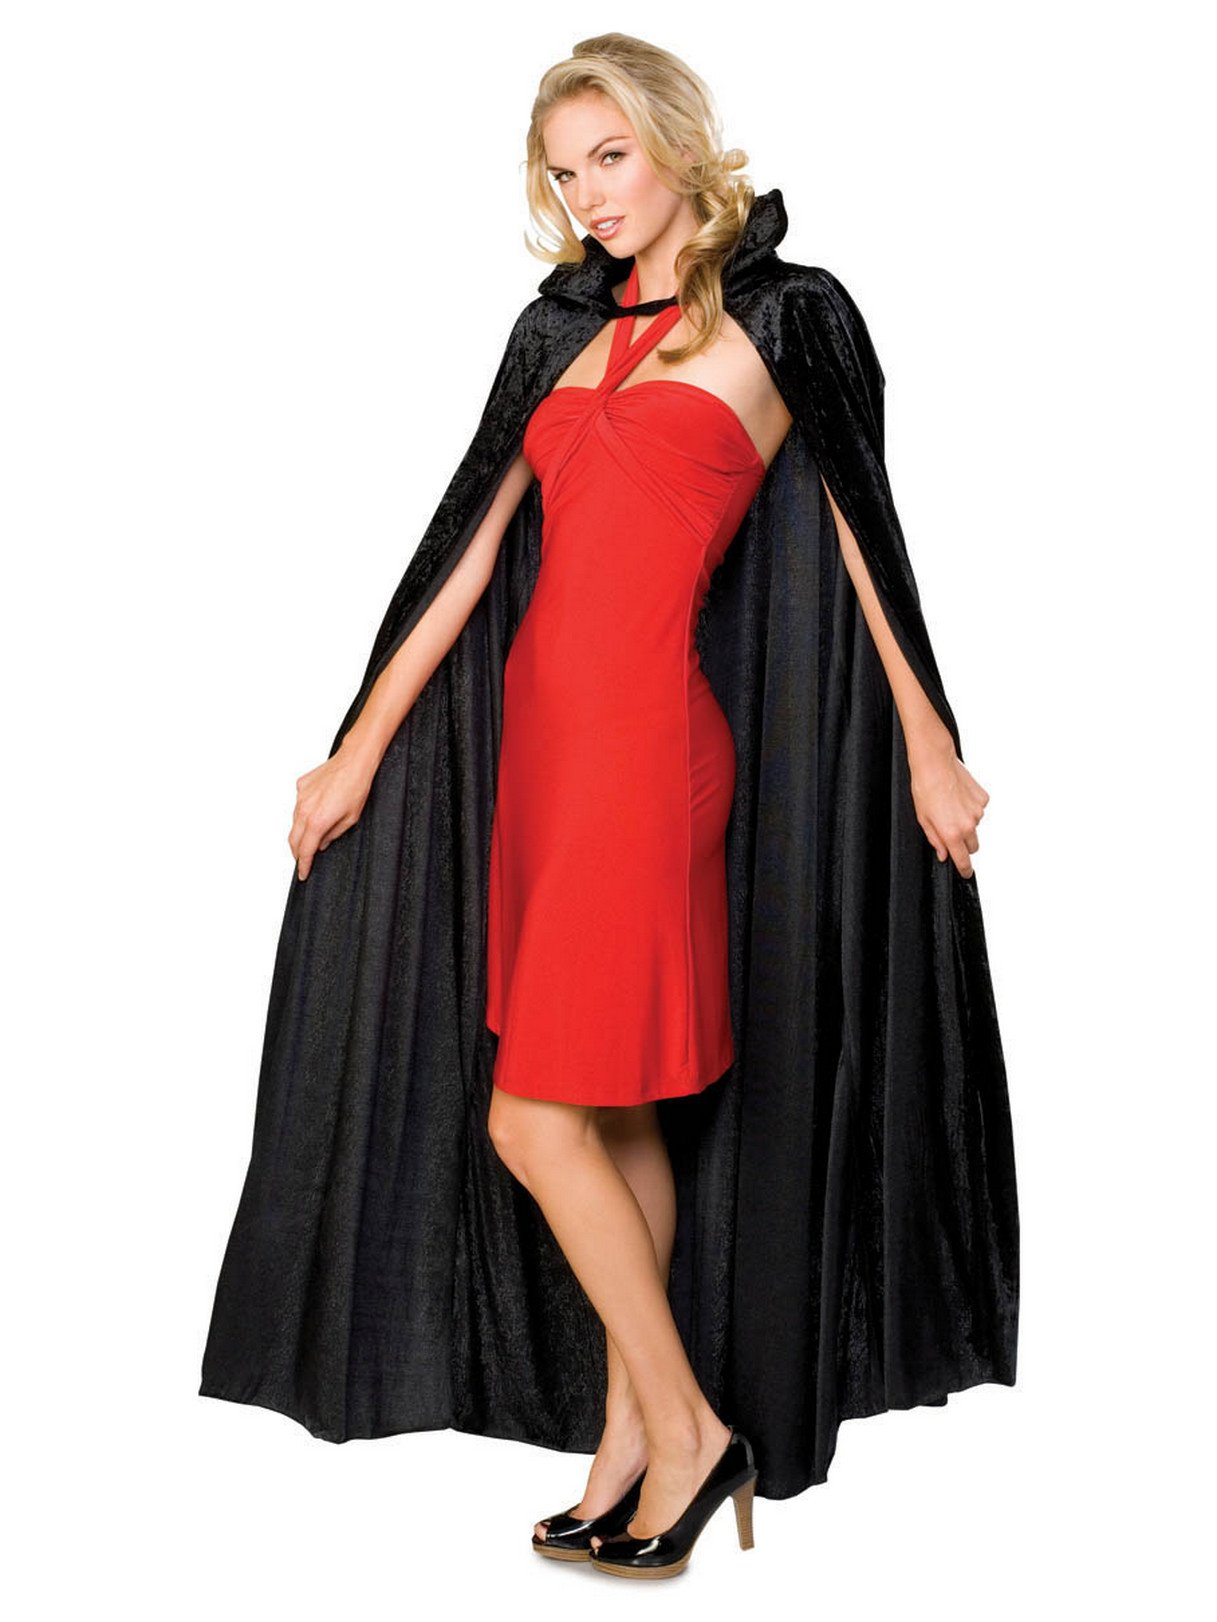 Rubie's Full Length Crushed Cape Costume, Black, One Size